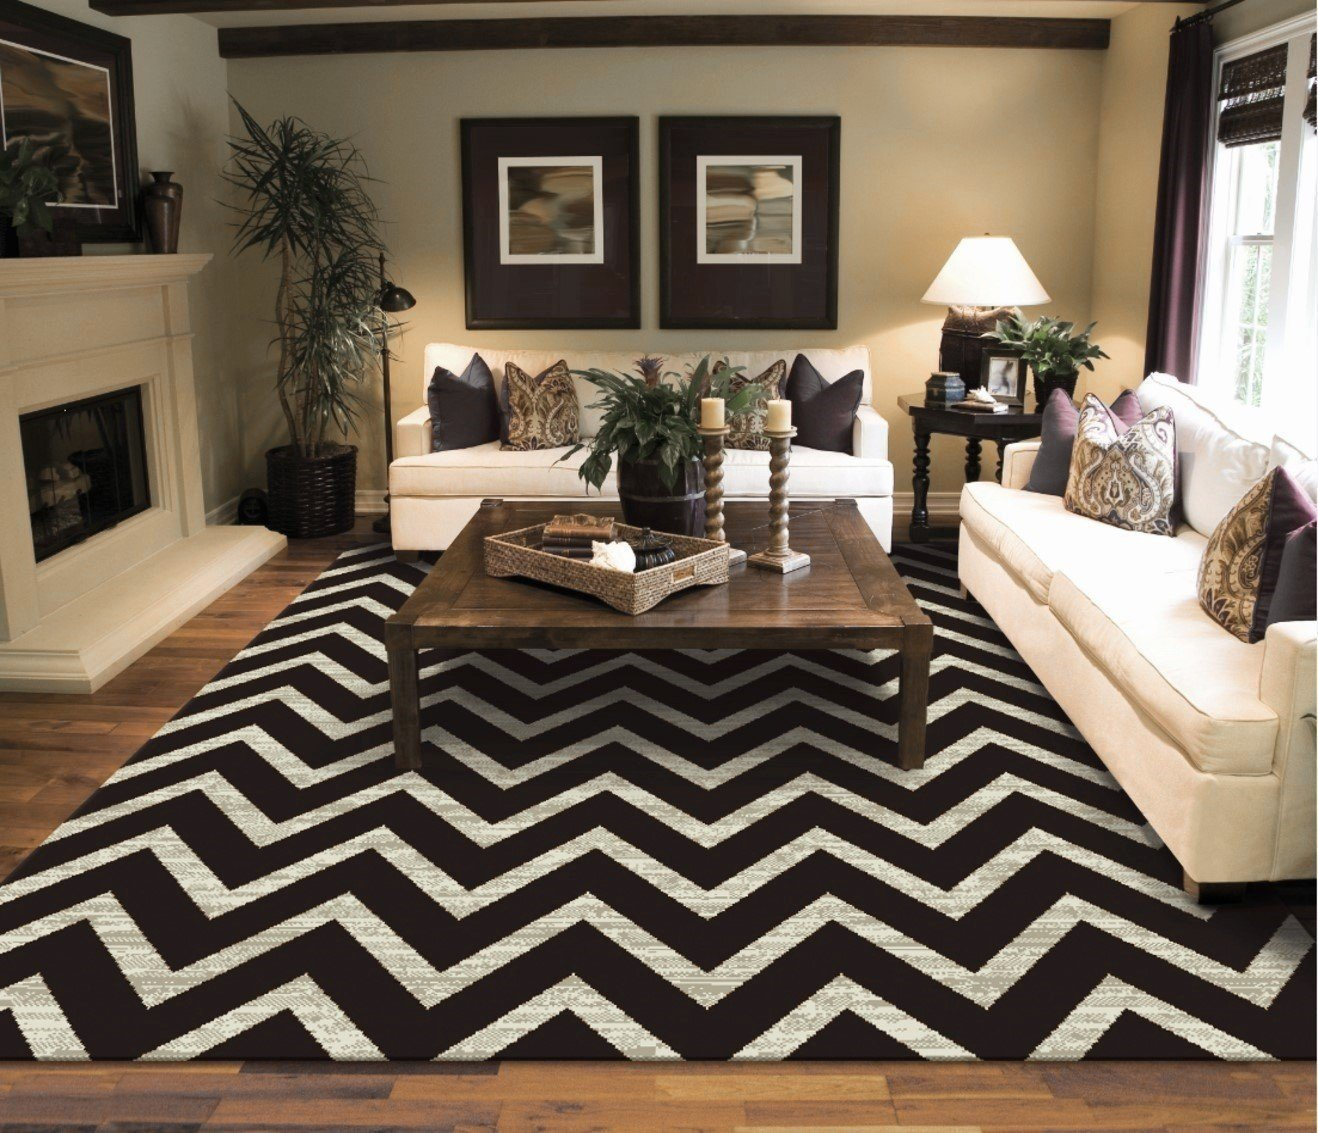 New Chevron Black Ivory Area Rugs For Living Room 5×7 ZigZag Rugs For Bedroom, 5×8 Black Zig Zag Rug